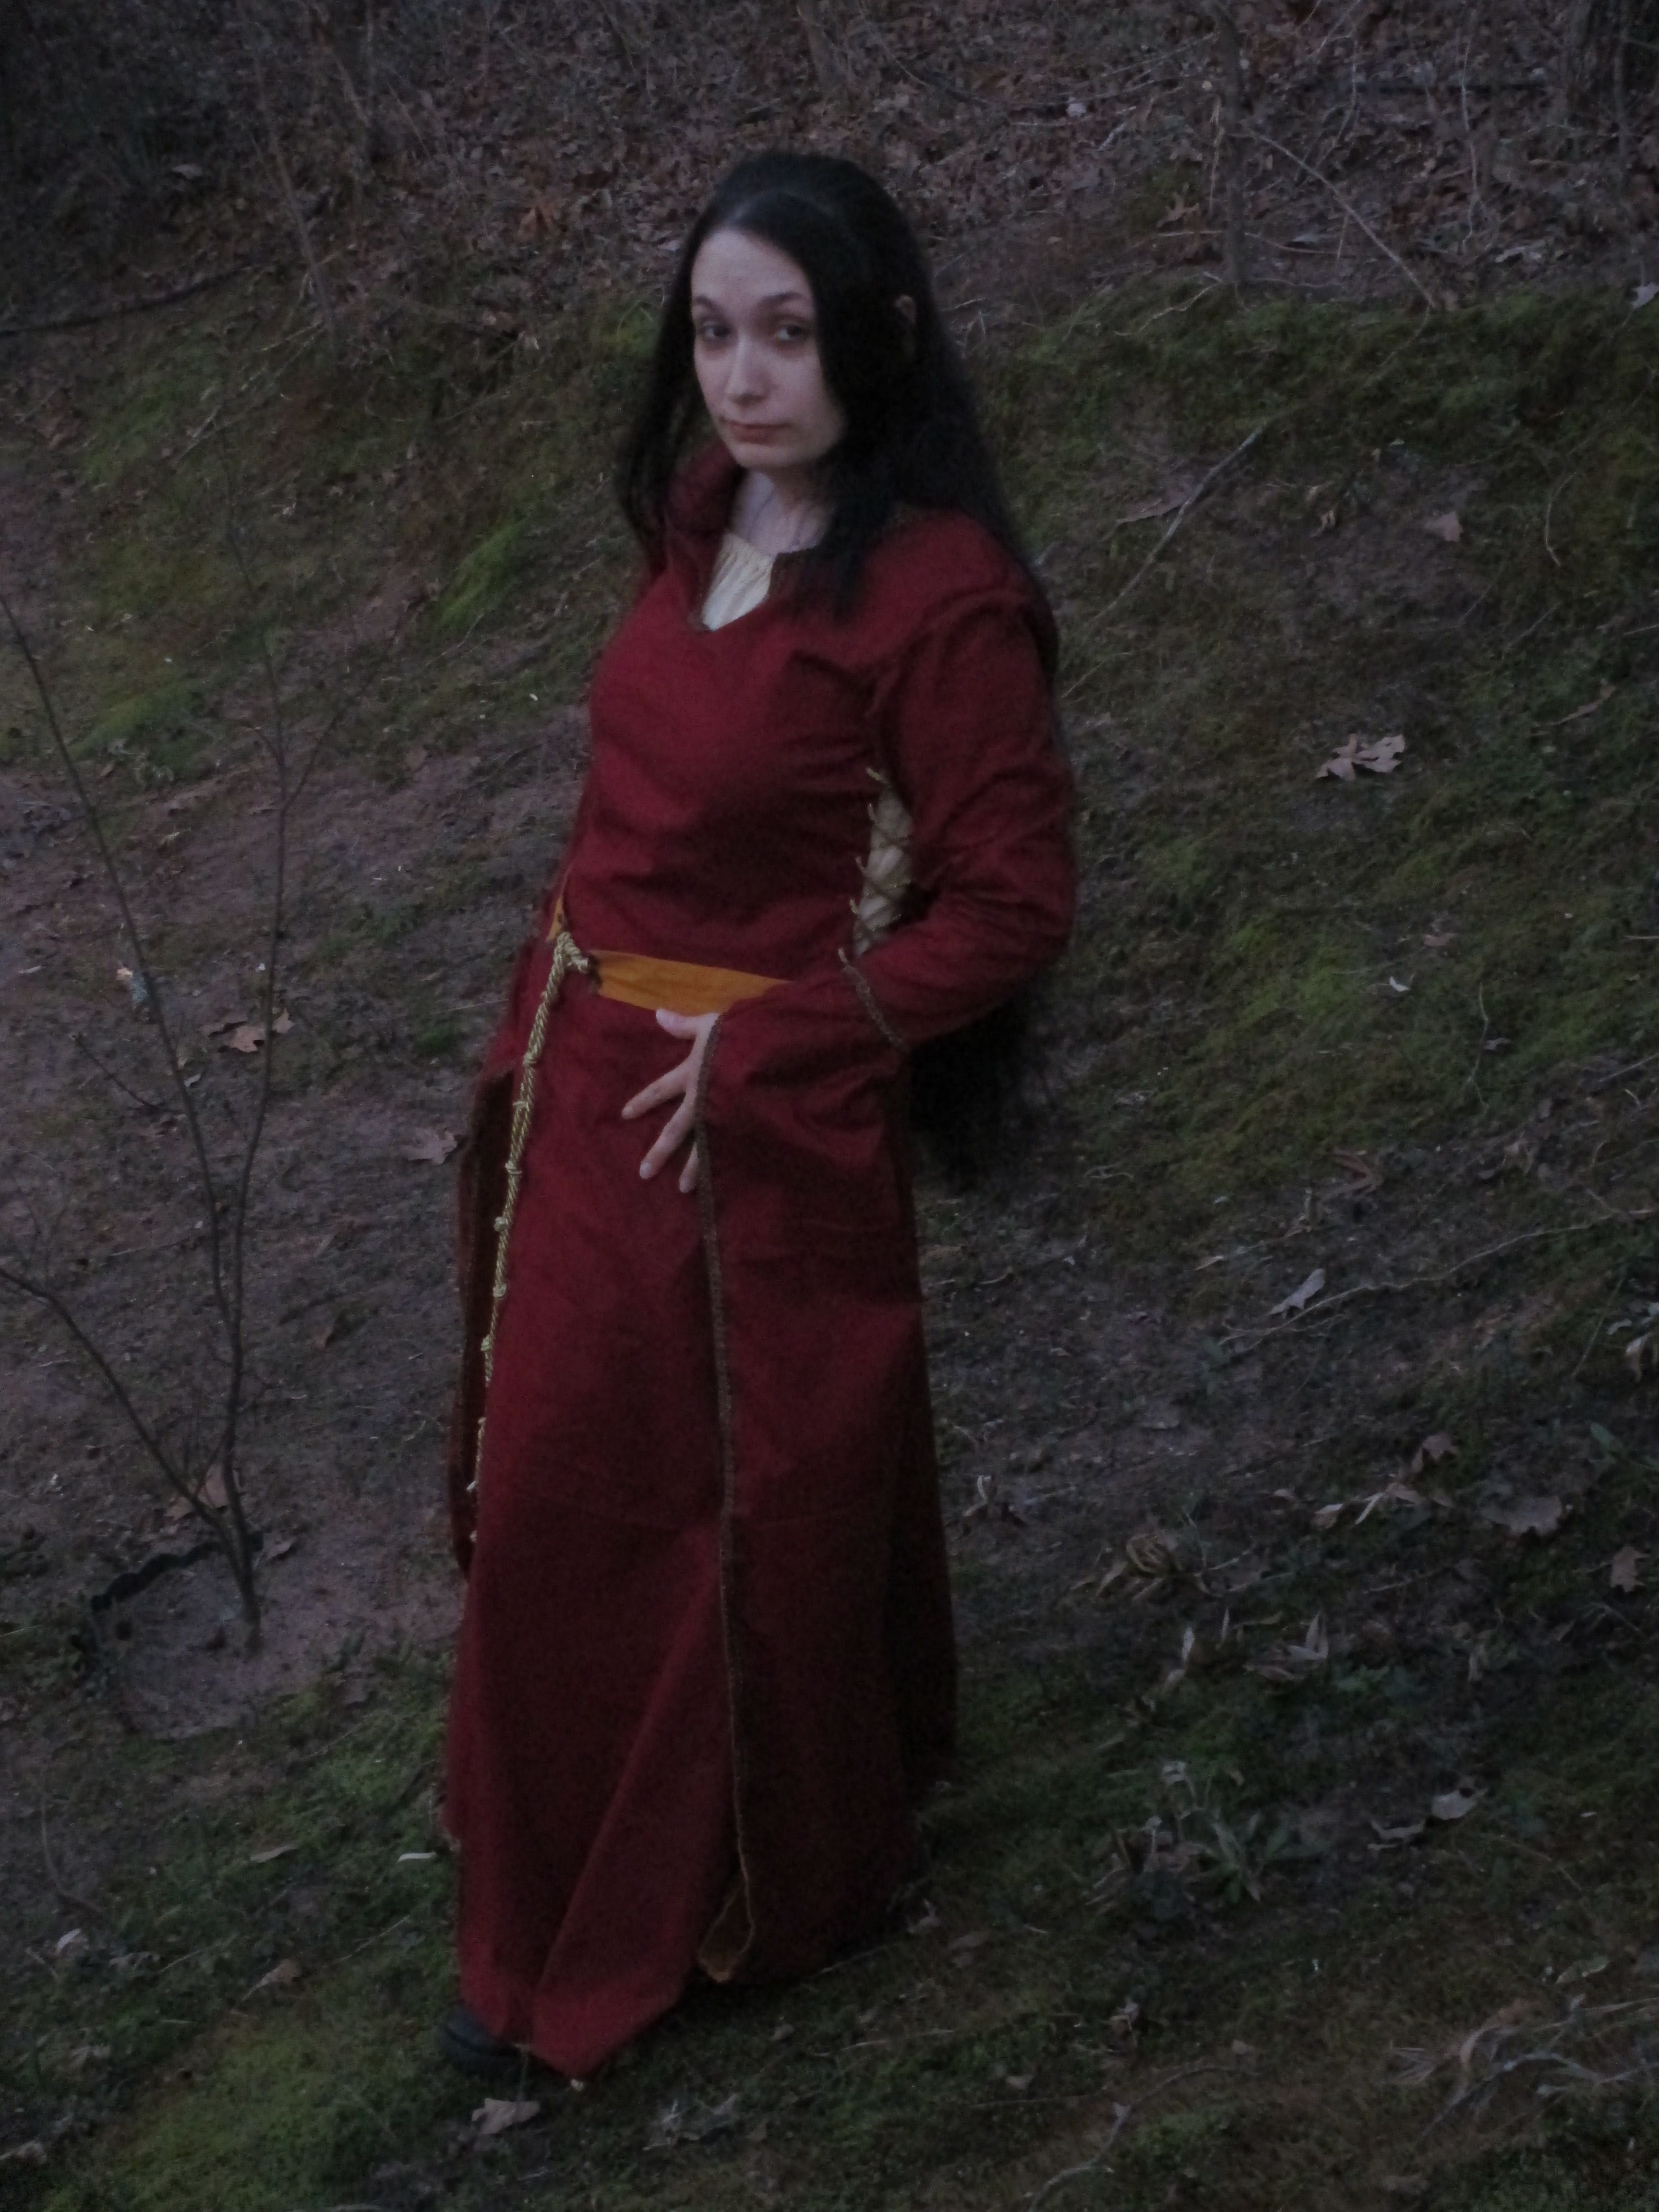 Red And Gold 12th Century Dress With Pendant Sleeves Check Out Its Construction Here Http Admiringmiranda Tumblr Altering Clothes Century Clothing Fashion